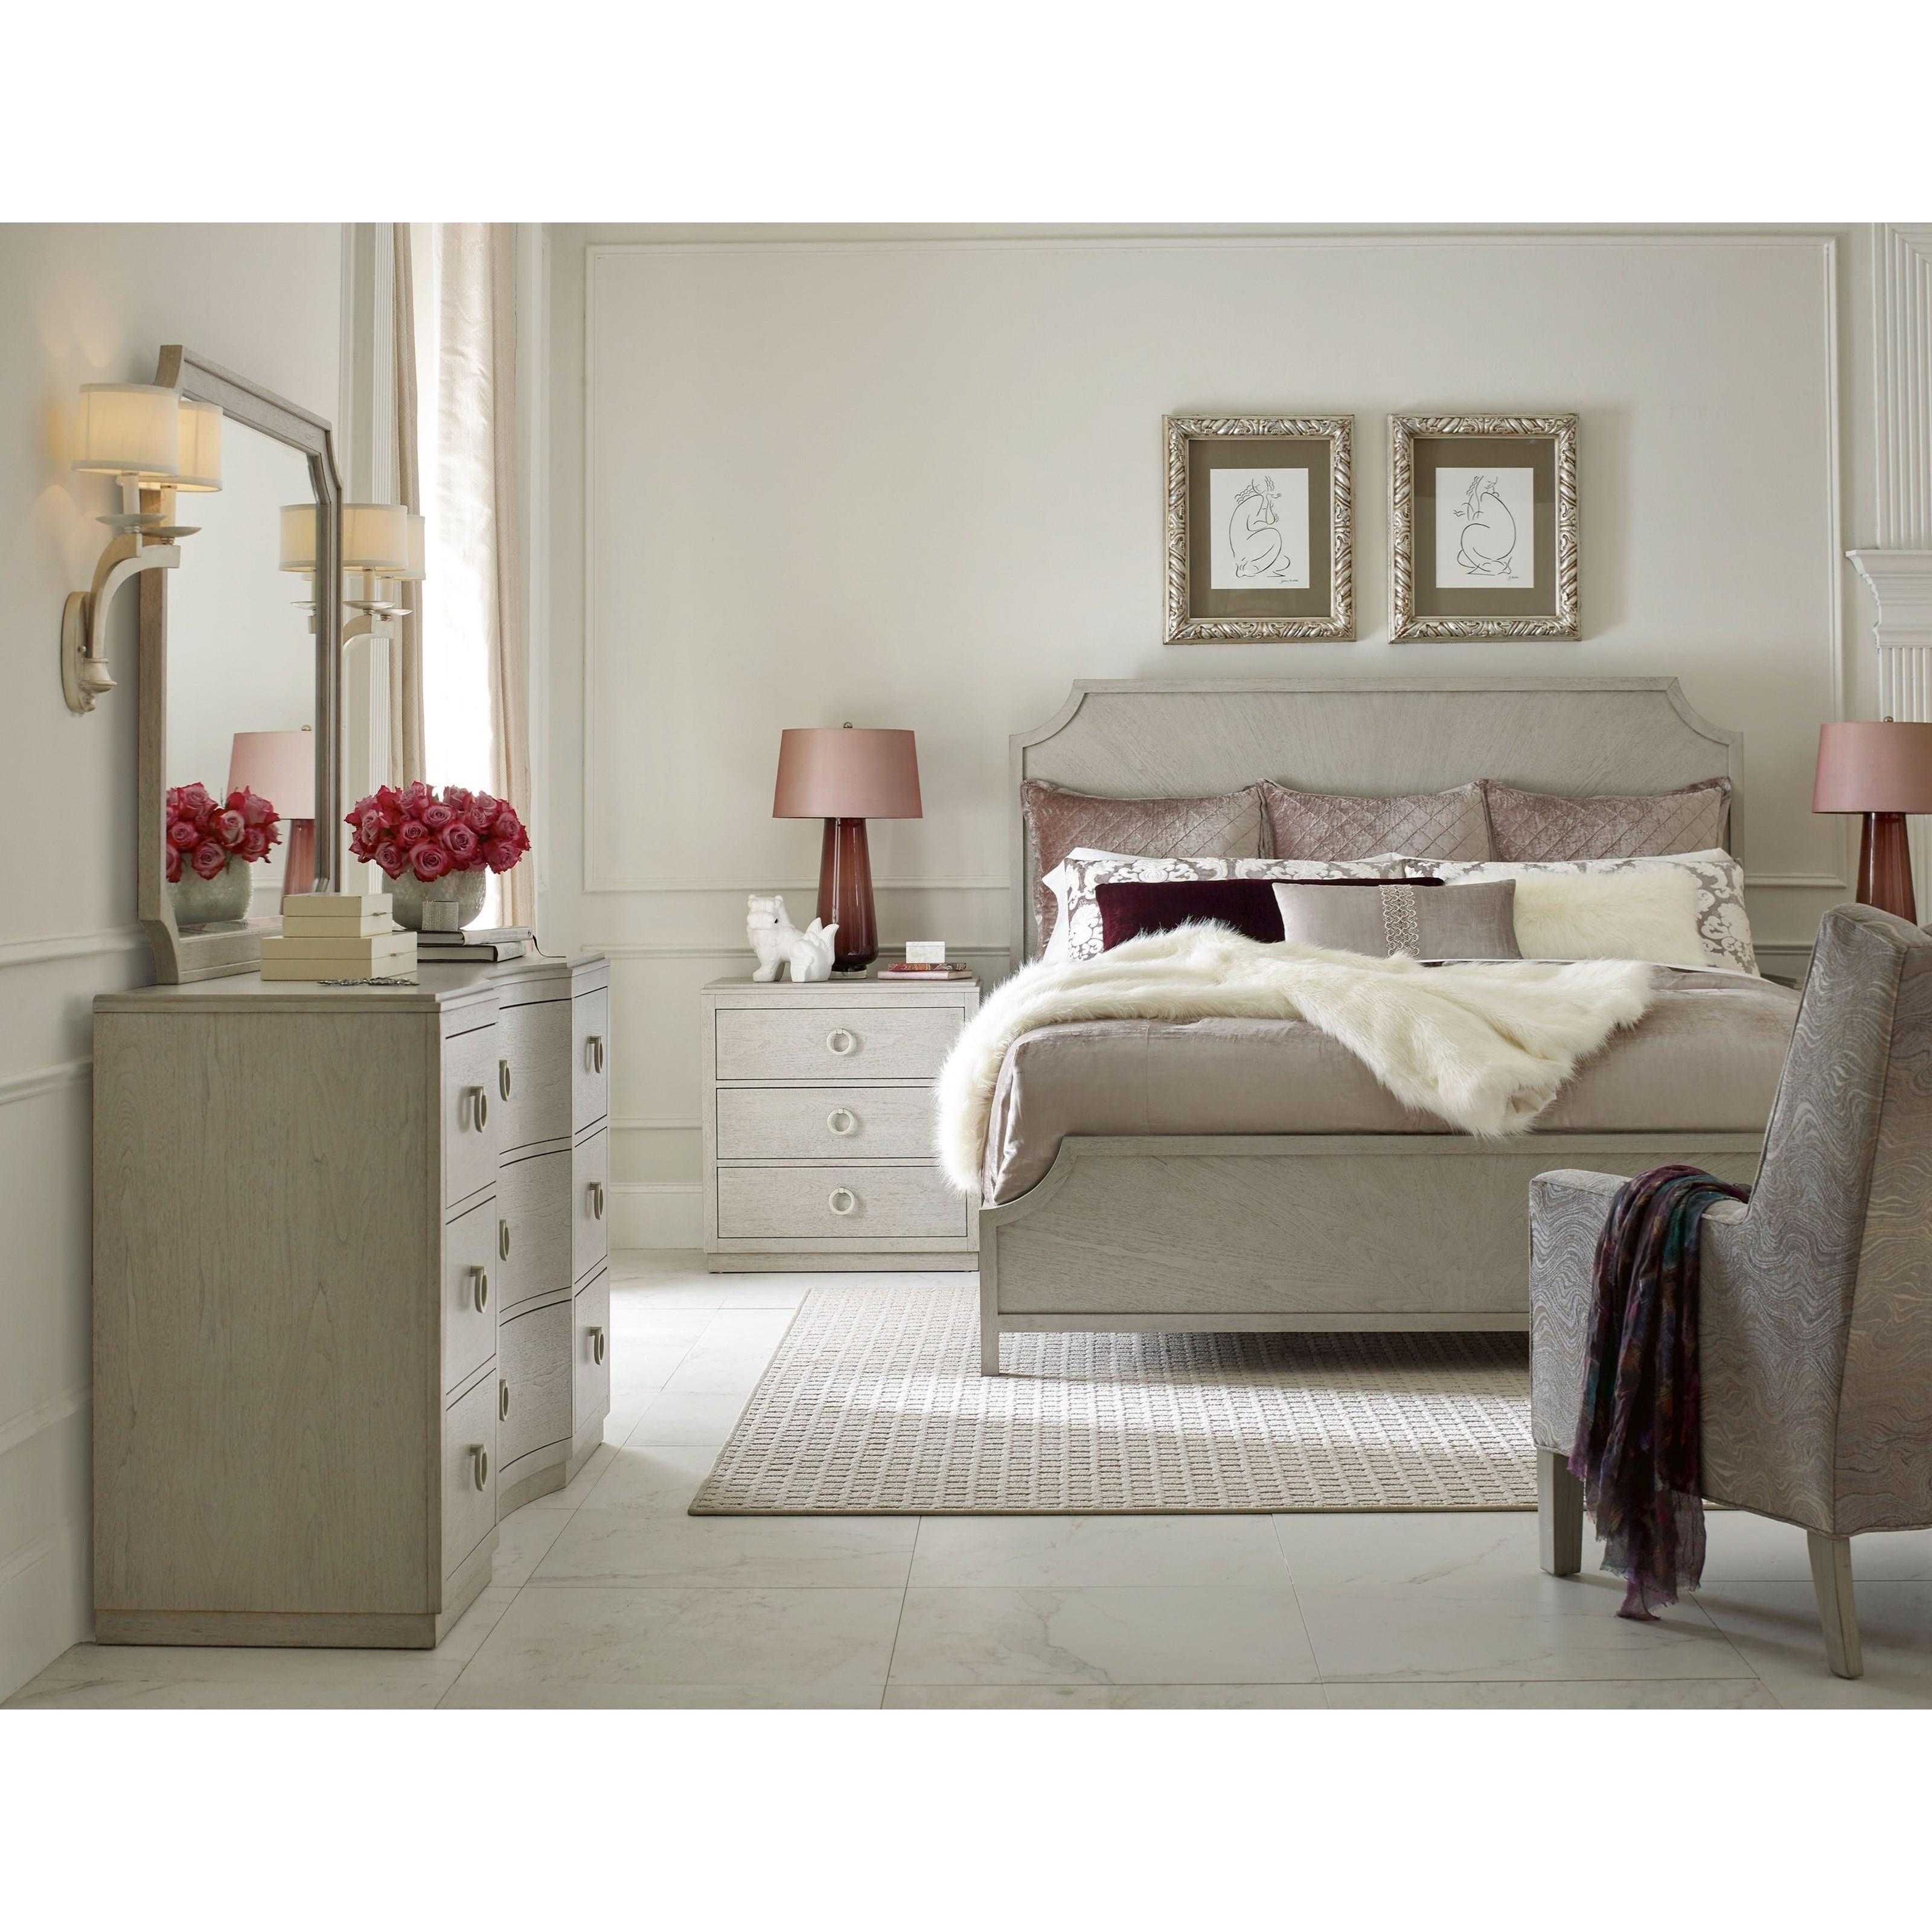 Rachael Ray Home By Legacy Classic Cinema 7200 4105k Queen